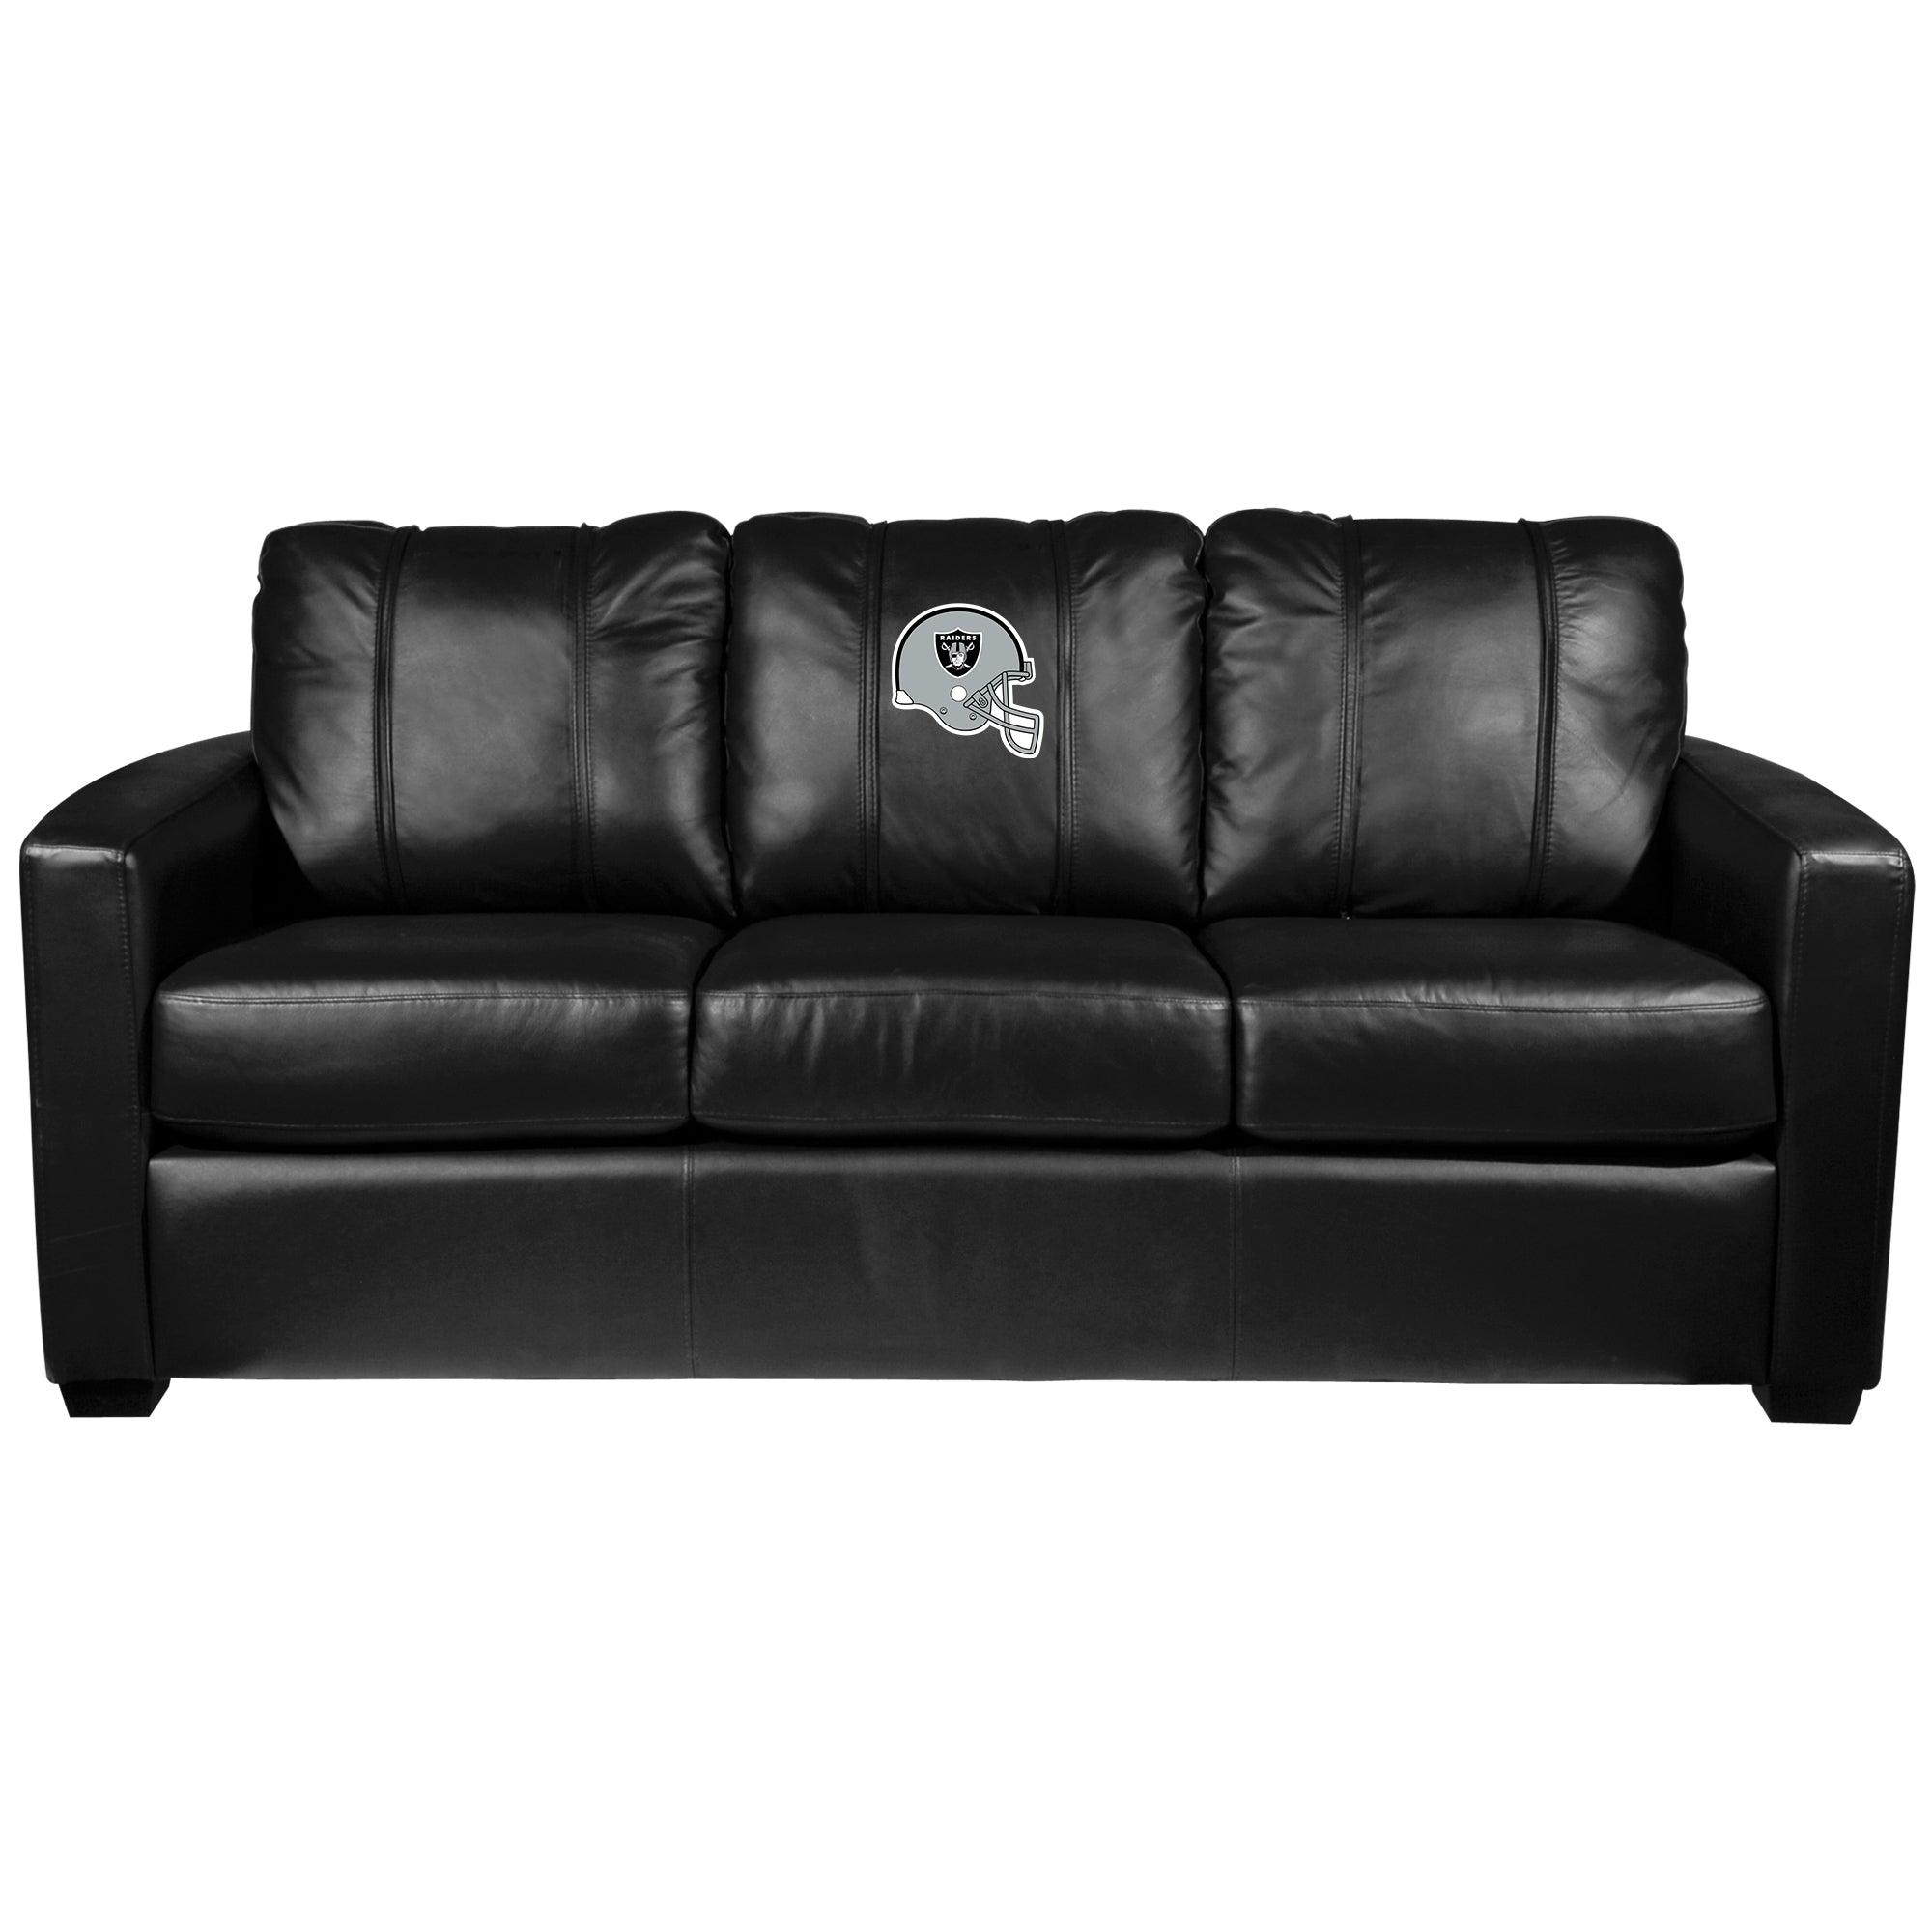 Silver Sofa with  Las Vegas Raiders Helmet Logo